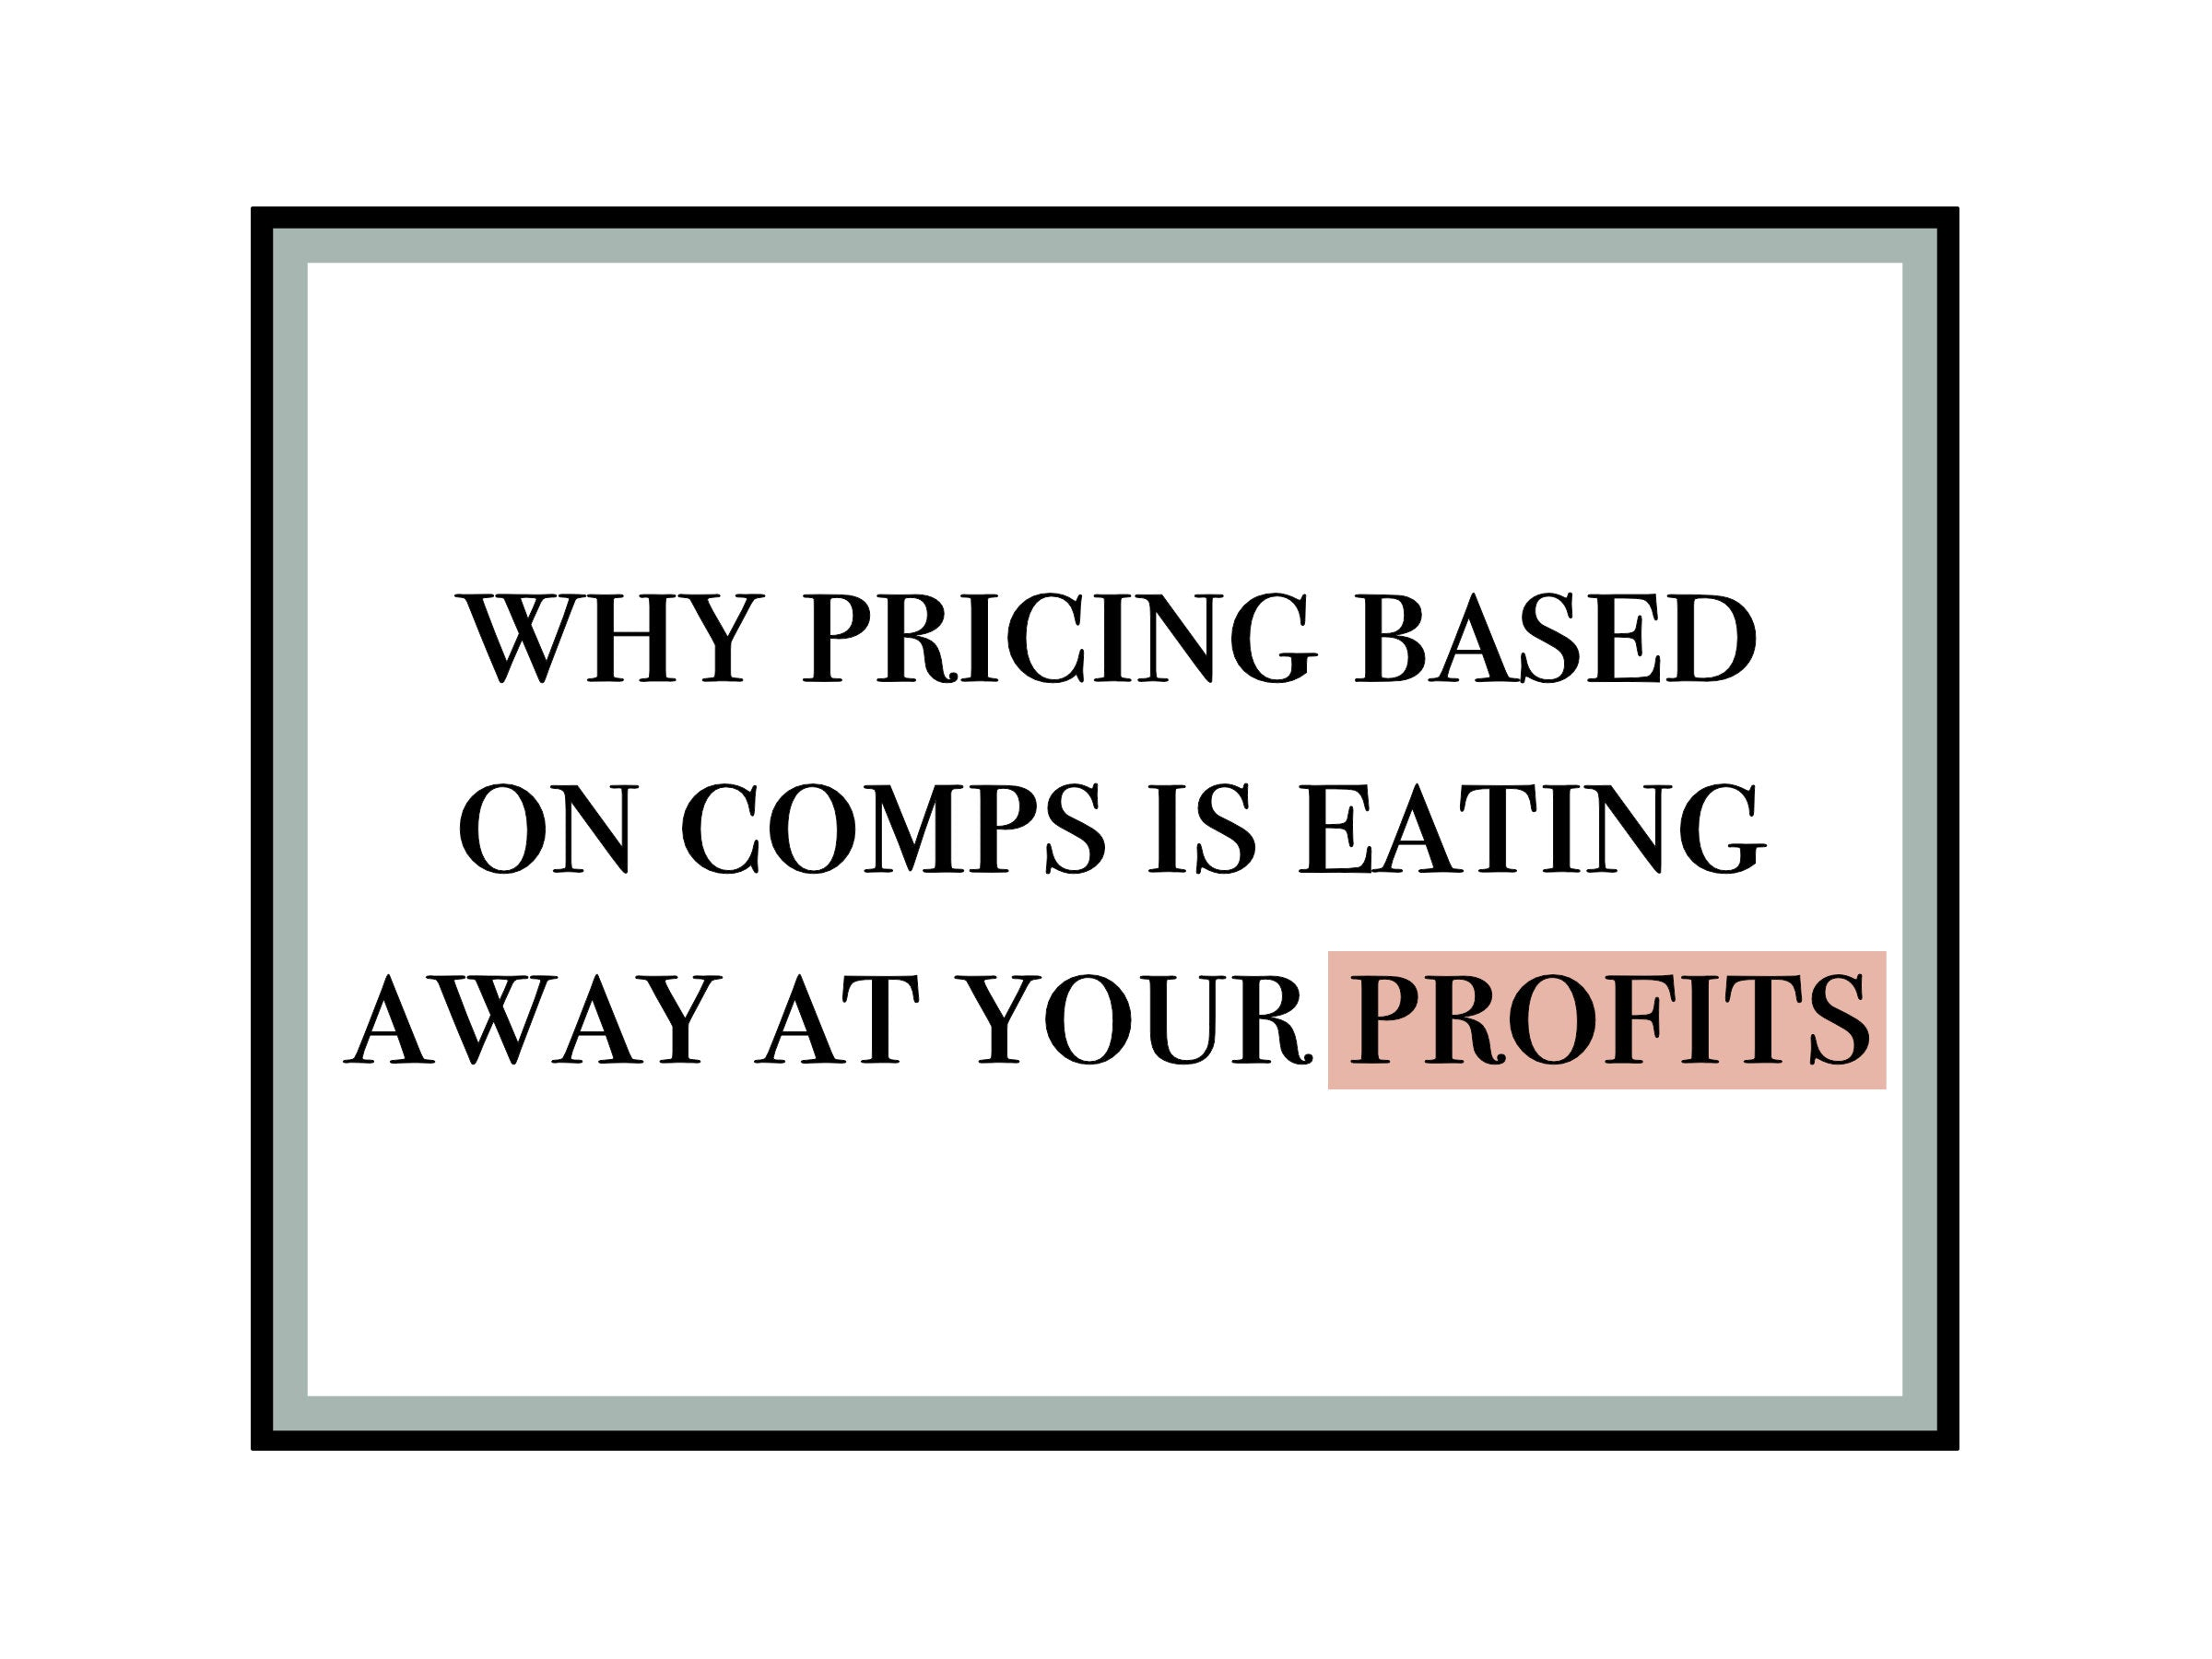 How Pricing Based on Comps is Hurting Your Profit